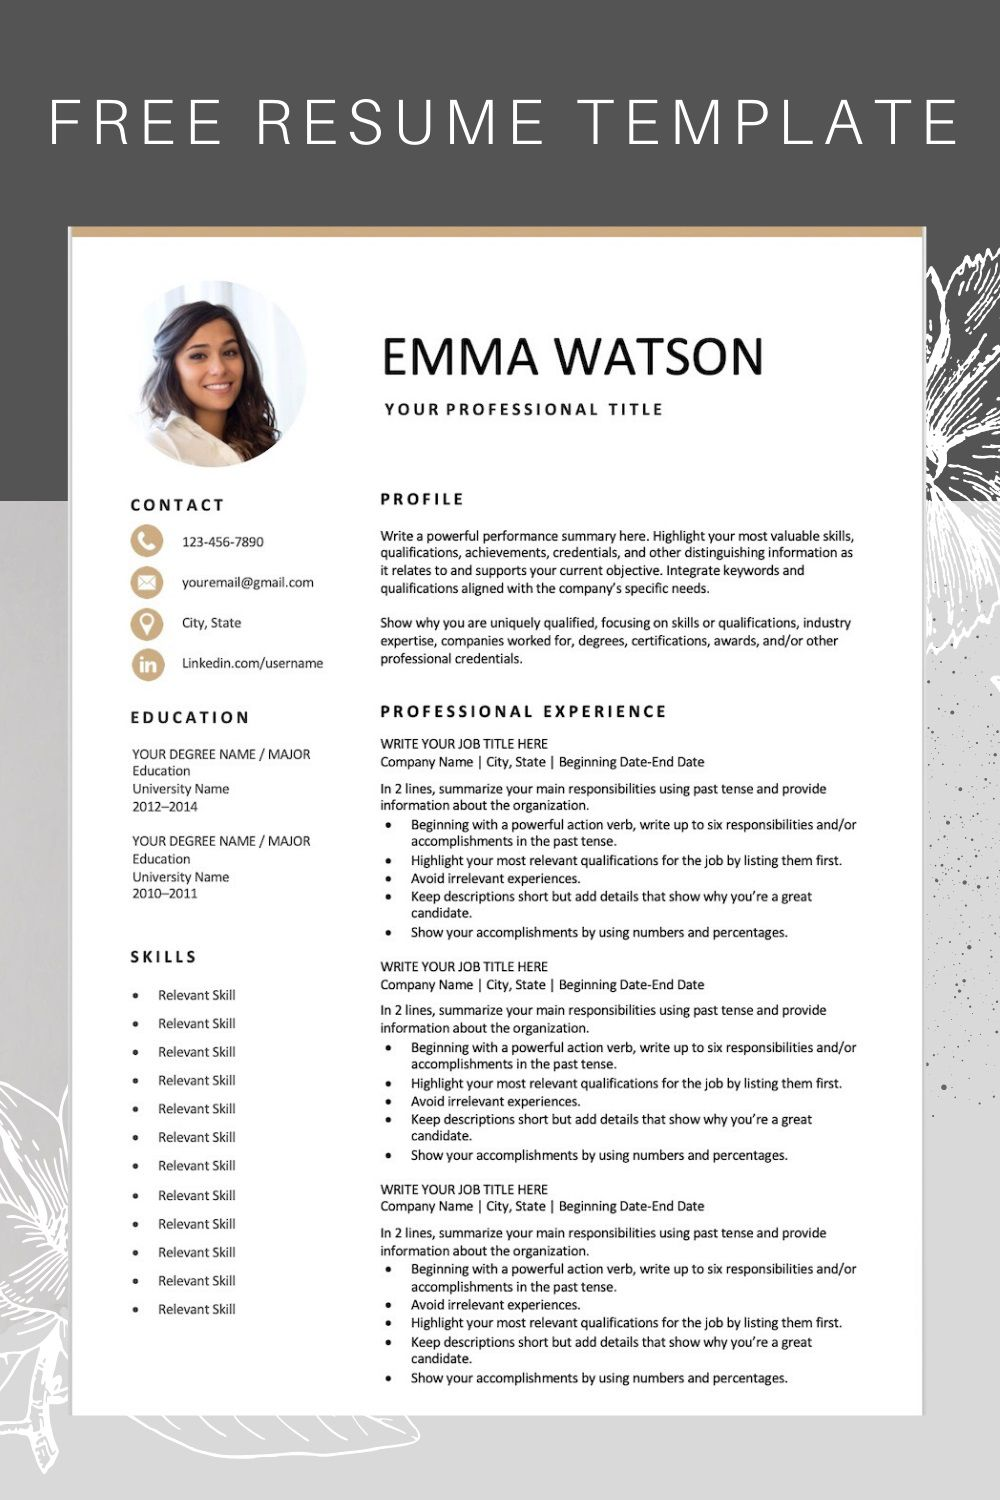 000 Wonderful Free Downloadable Resume Template Inspiration  Templates For Page Download Format Fresher PdfFull